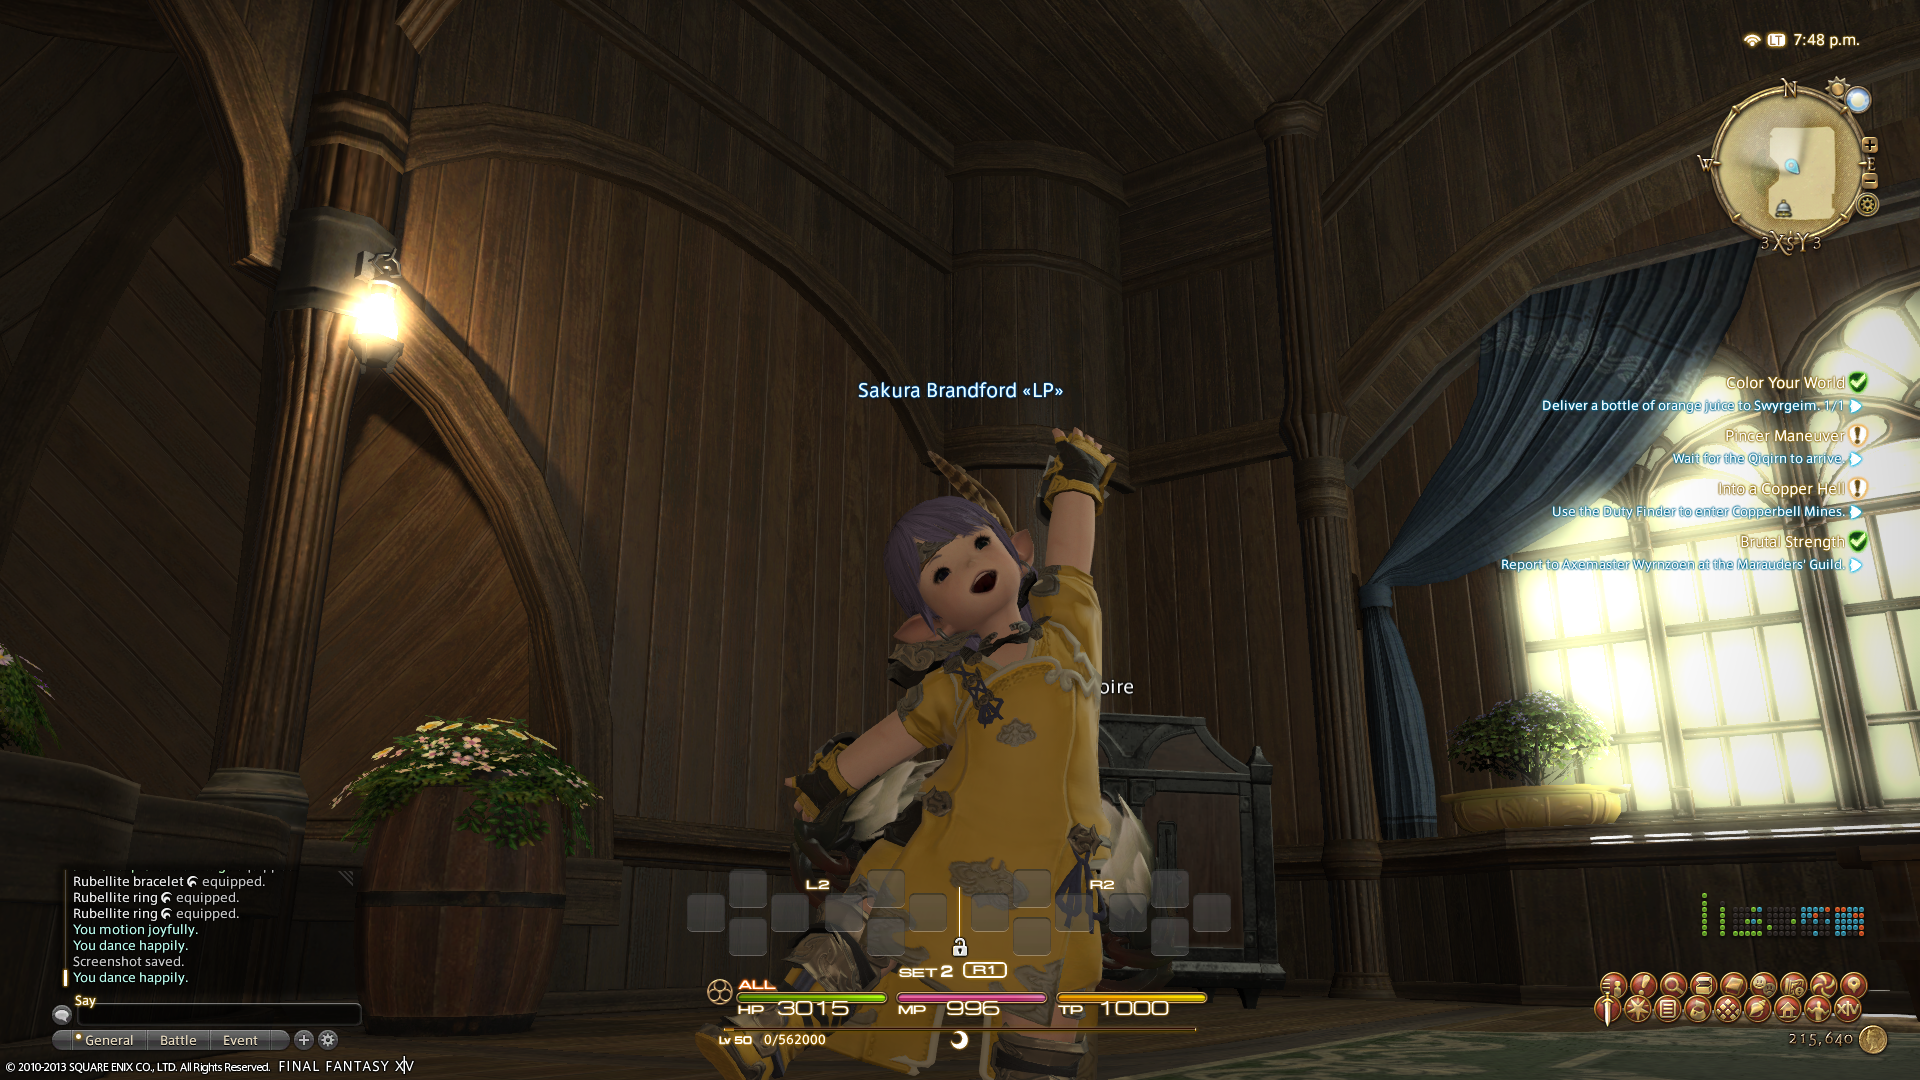 ratatapa ffxiv cute fantastic awesome picture this comment cheesecake phase contest wanted just